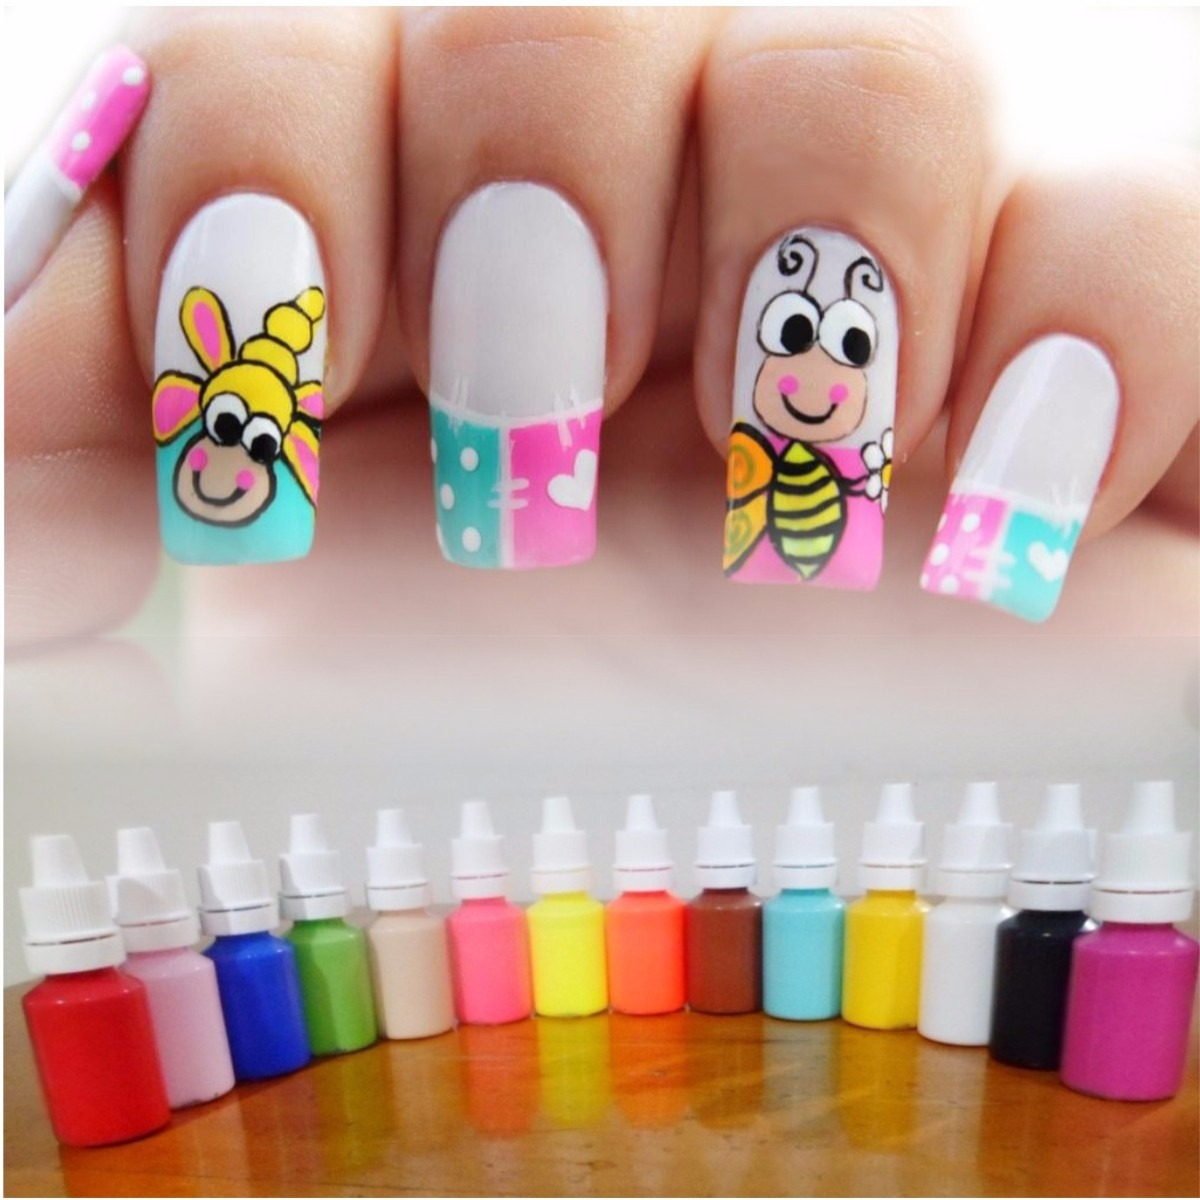 Kit de 12 pinturas acr licas nail art decoraci n u as for Productos decoracion unas